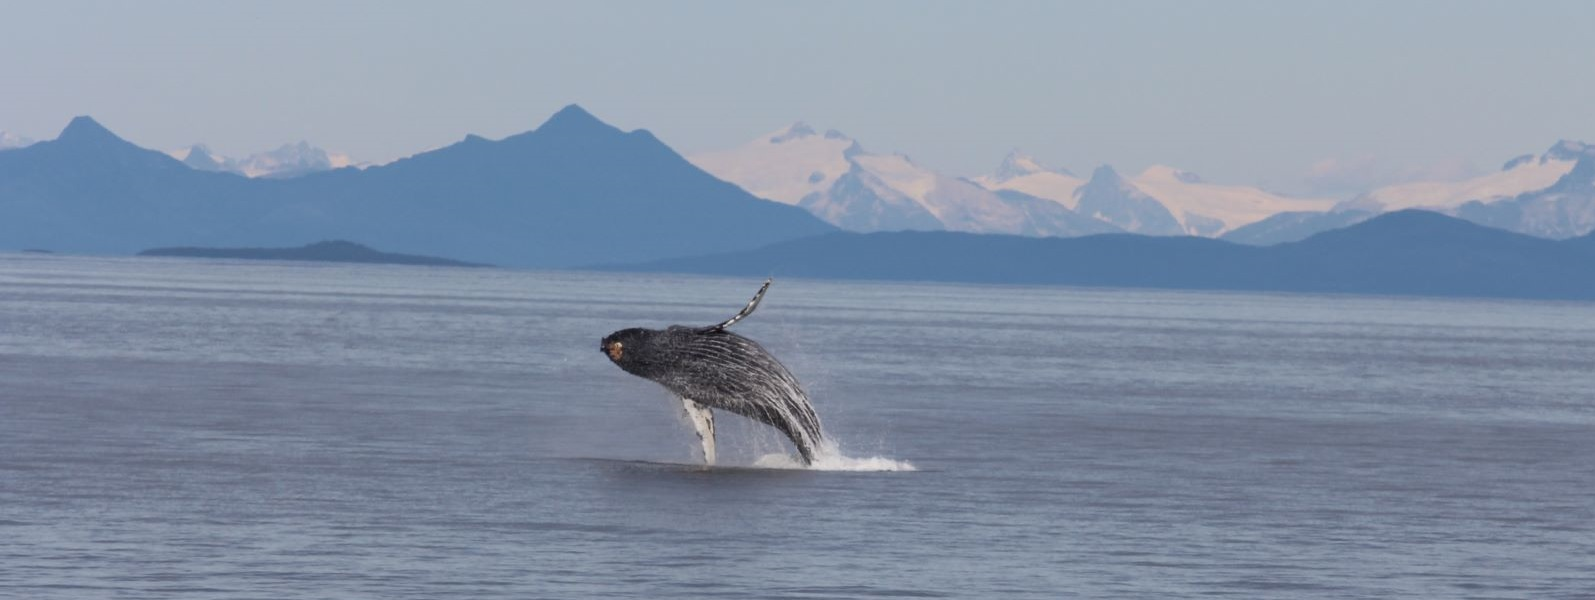 Humpback breaching in Alaska